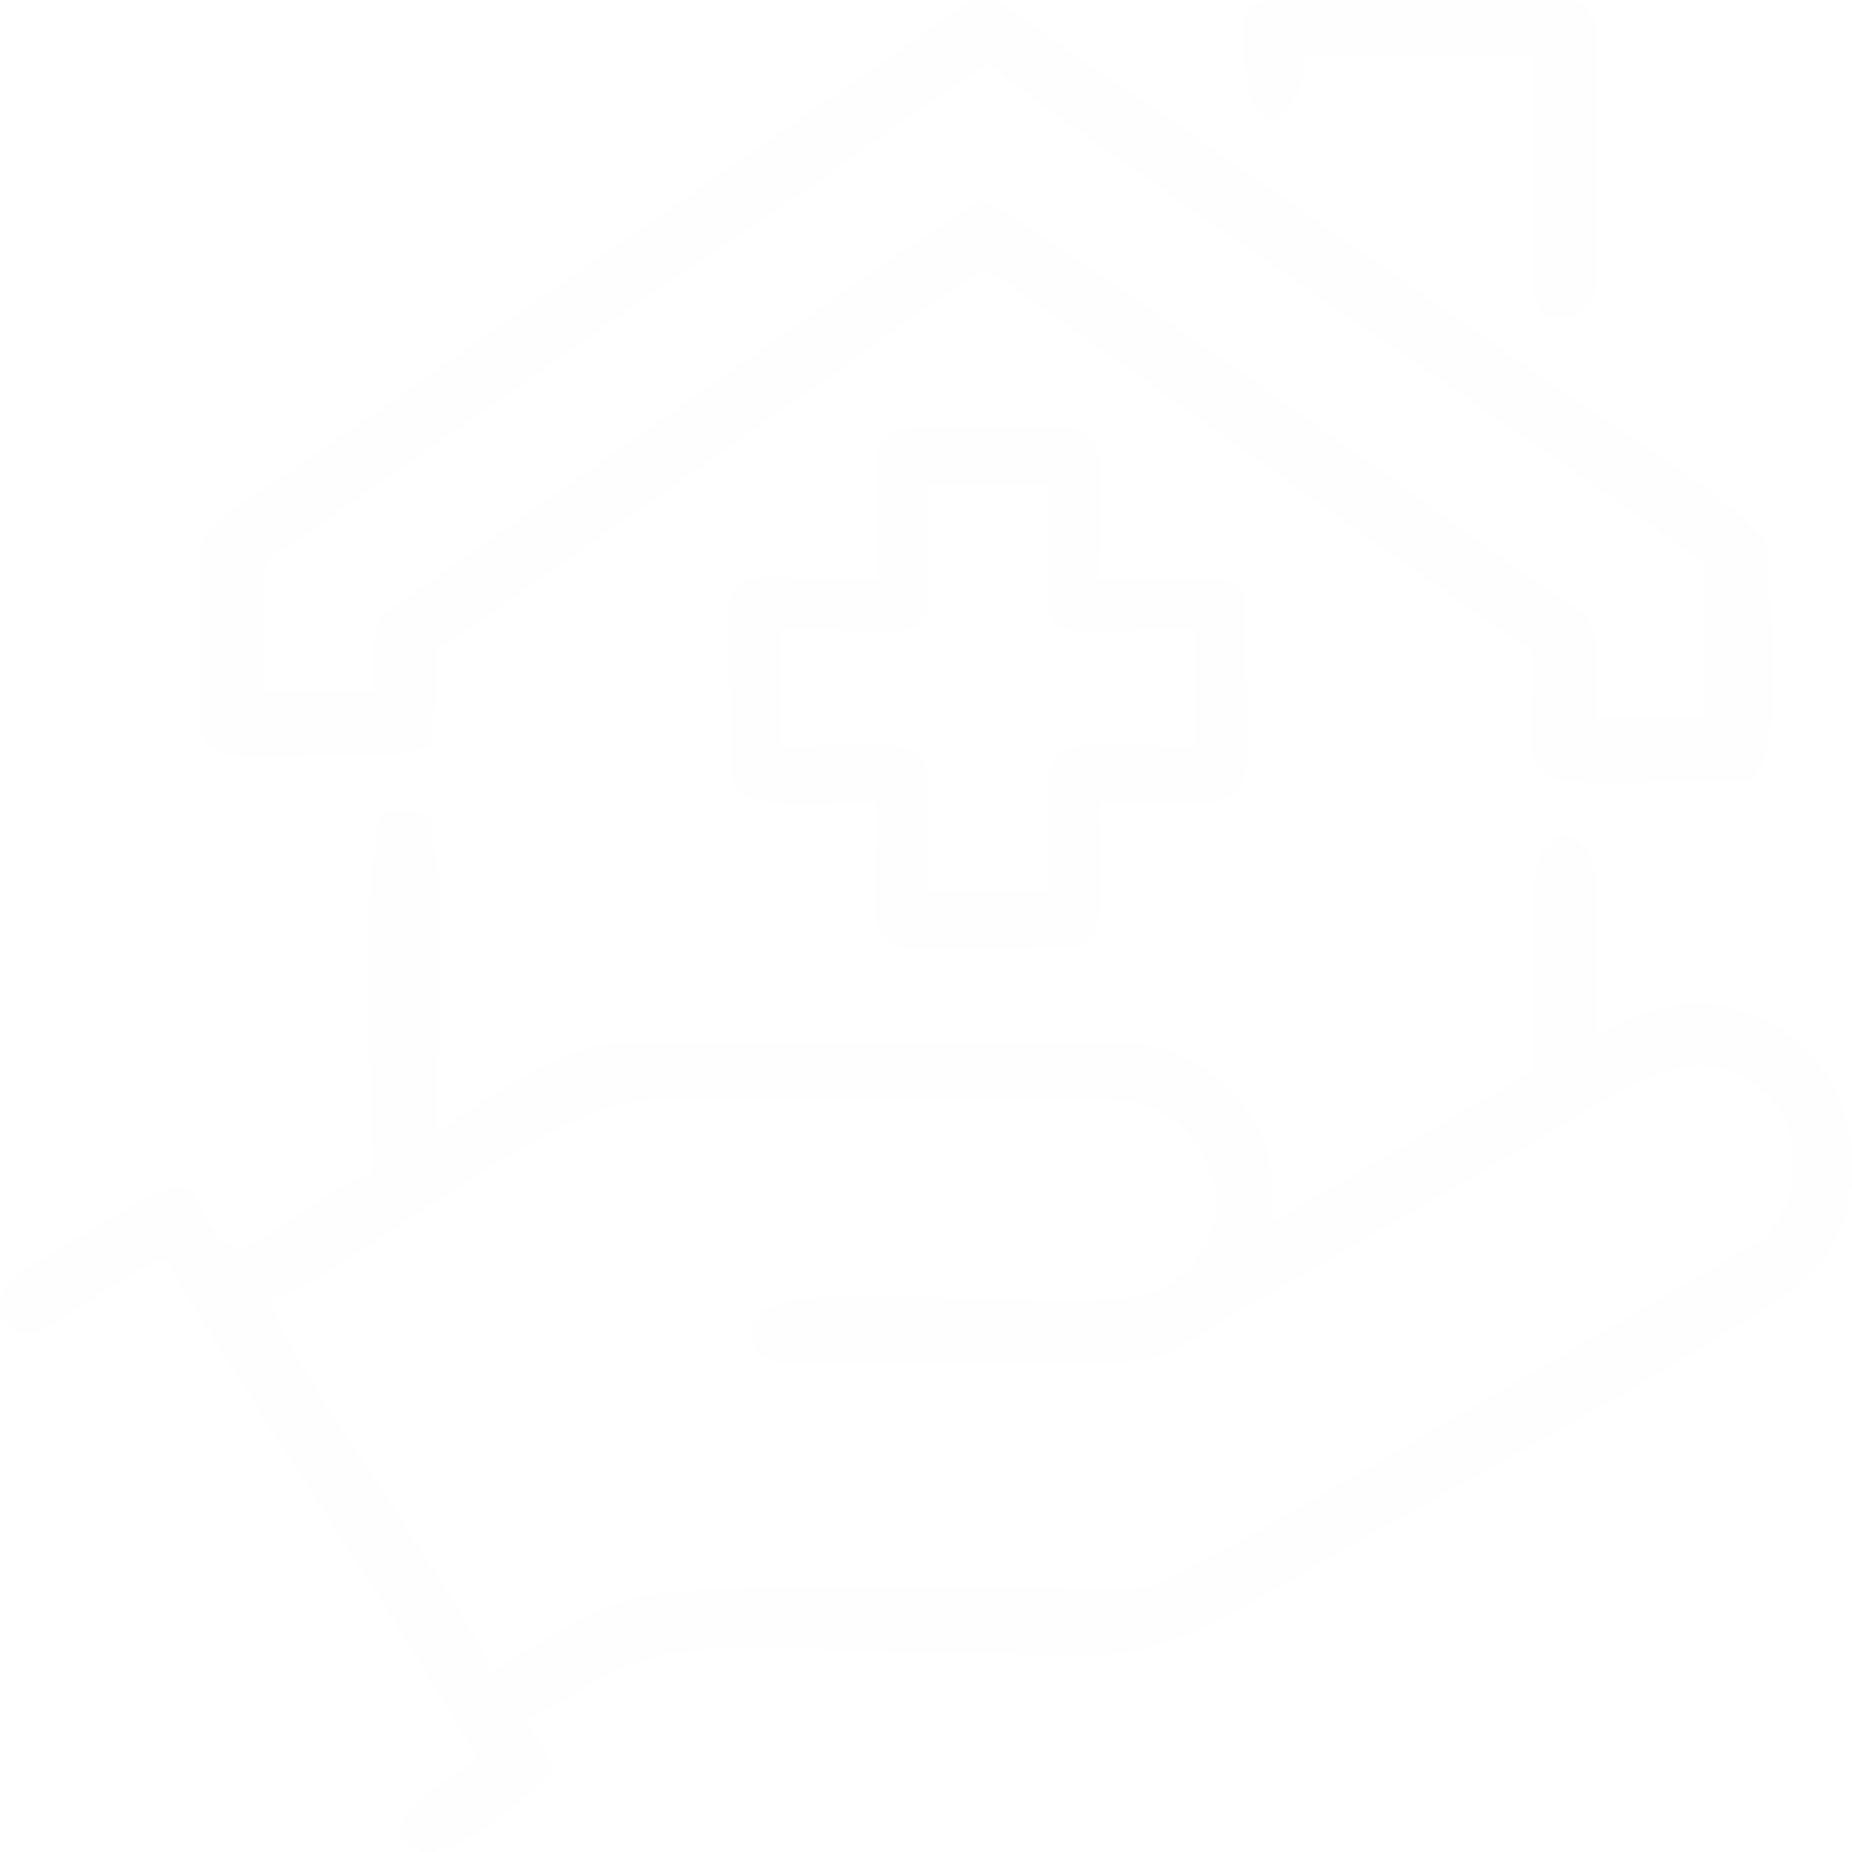 Home & Care Assistance